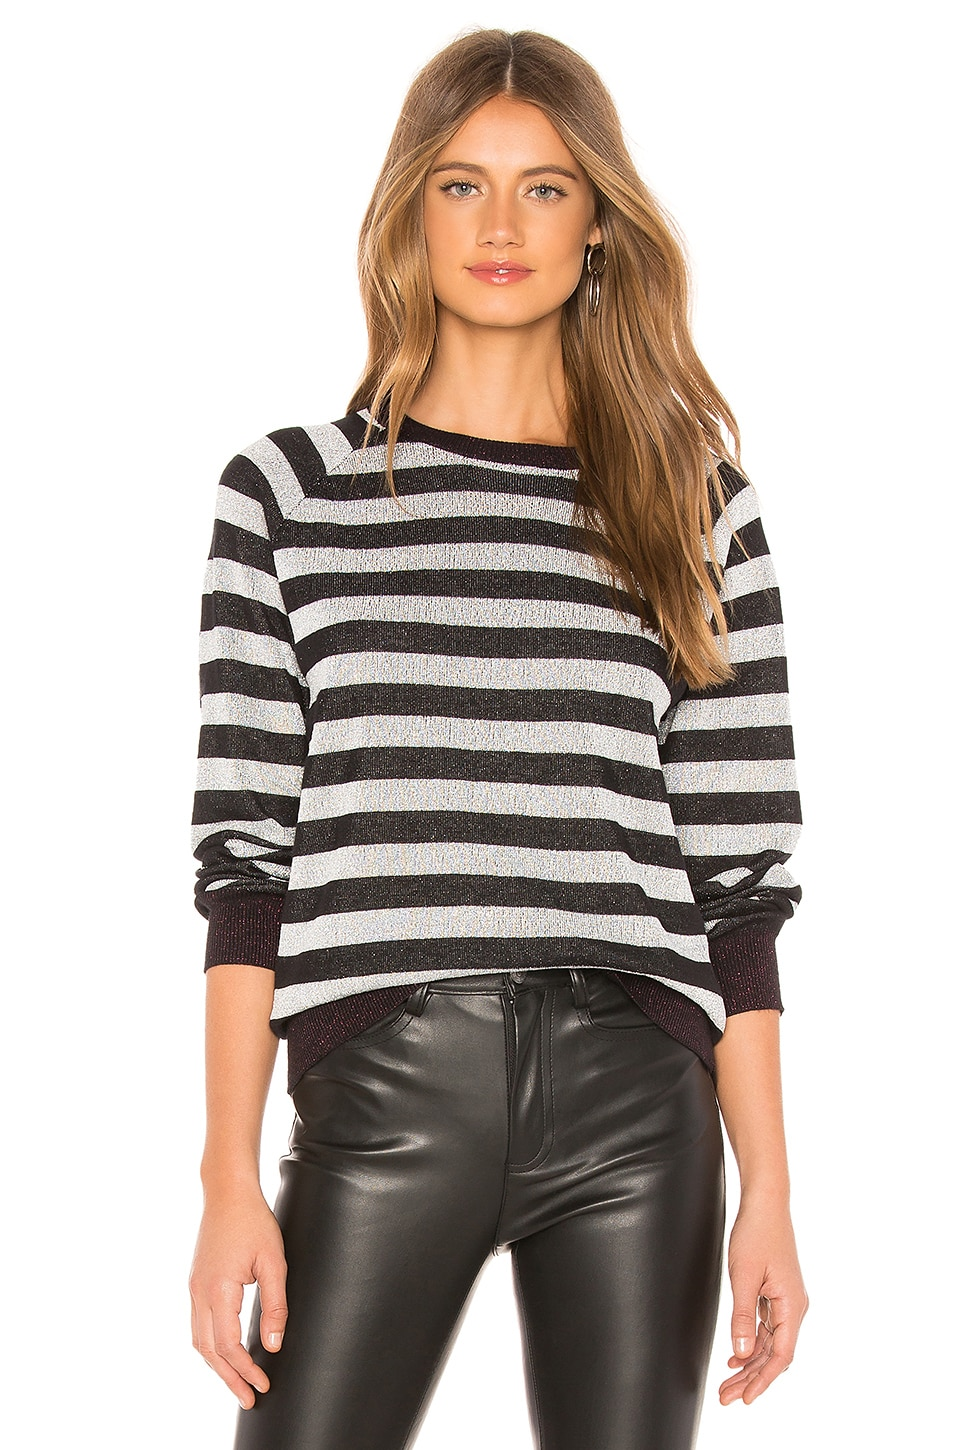 REPLICA LOS ANGELES Shiny Stripe Sweater in Black